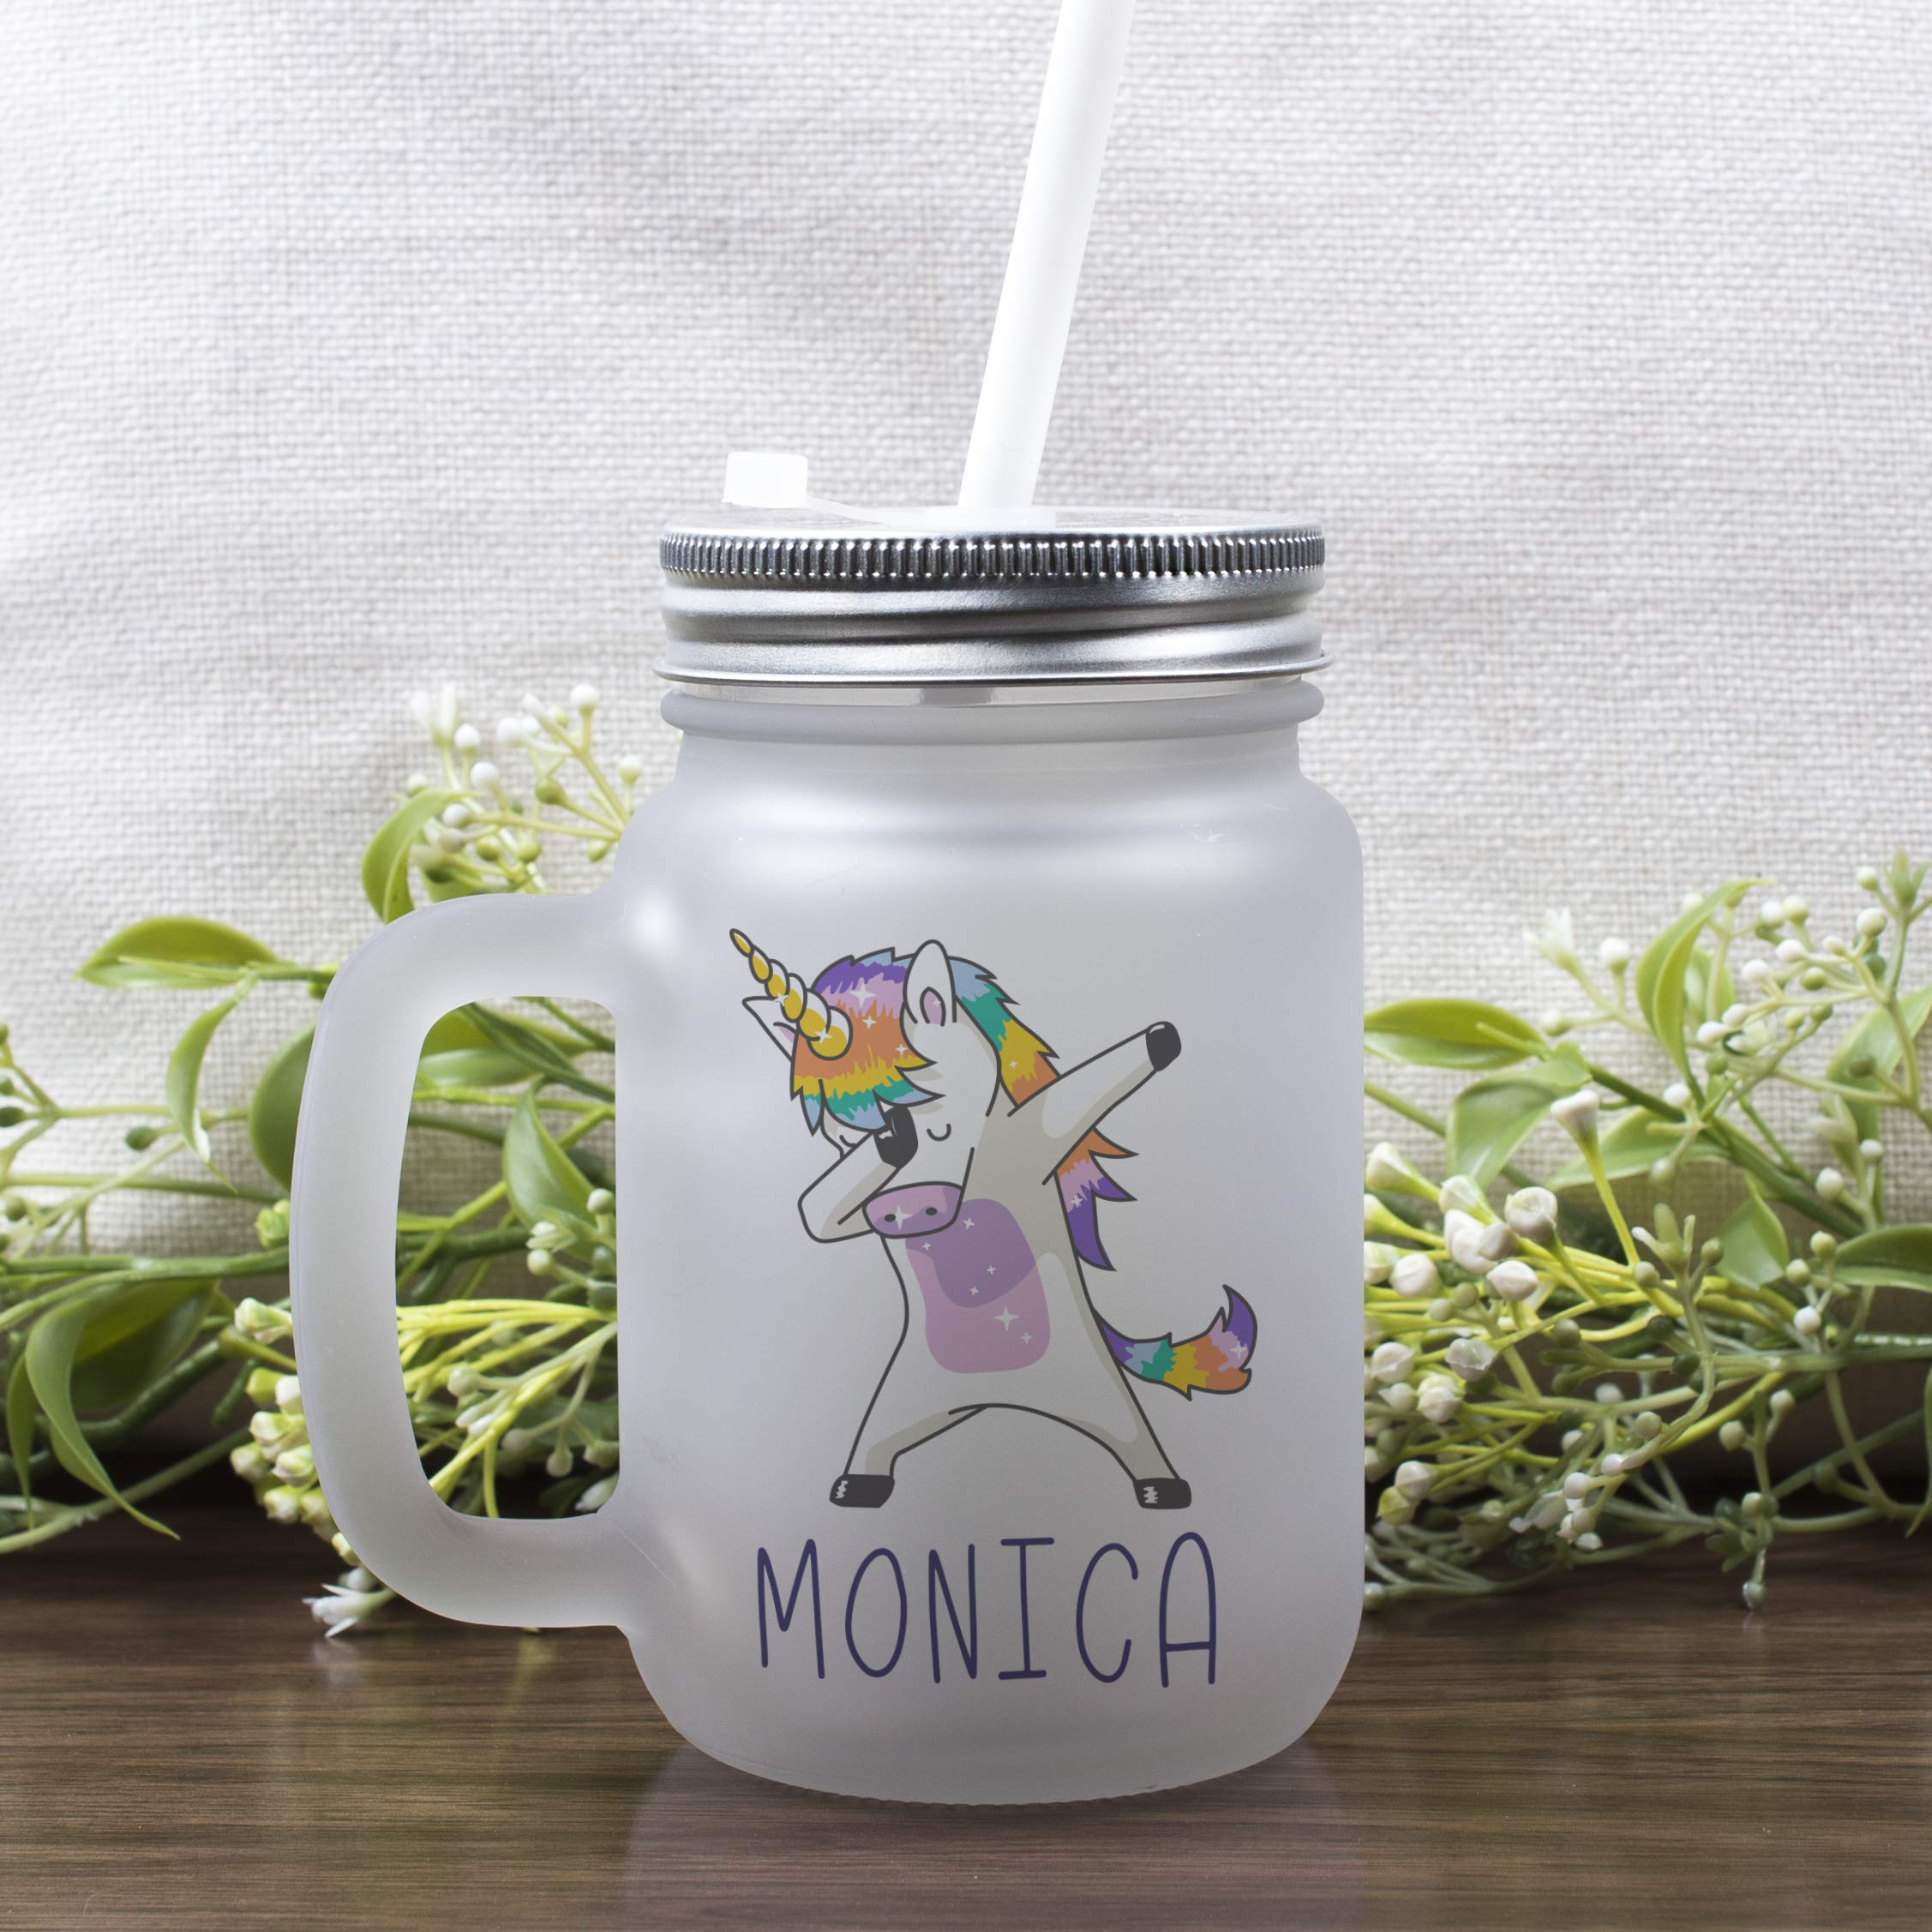 Personalized Gifts Dabbing Unicorn Coffee Mug - 12oz Frosted Mason Jar Coffee Mug with Lid and Straw -Birthday Gifts, Christmas Gifts, Mother's Day Gifts, Father's Day Gifts, Funny Mug for Kids by USA Custom Gifts (Image #3)